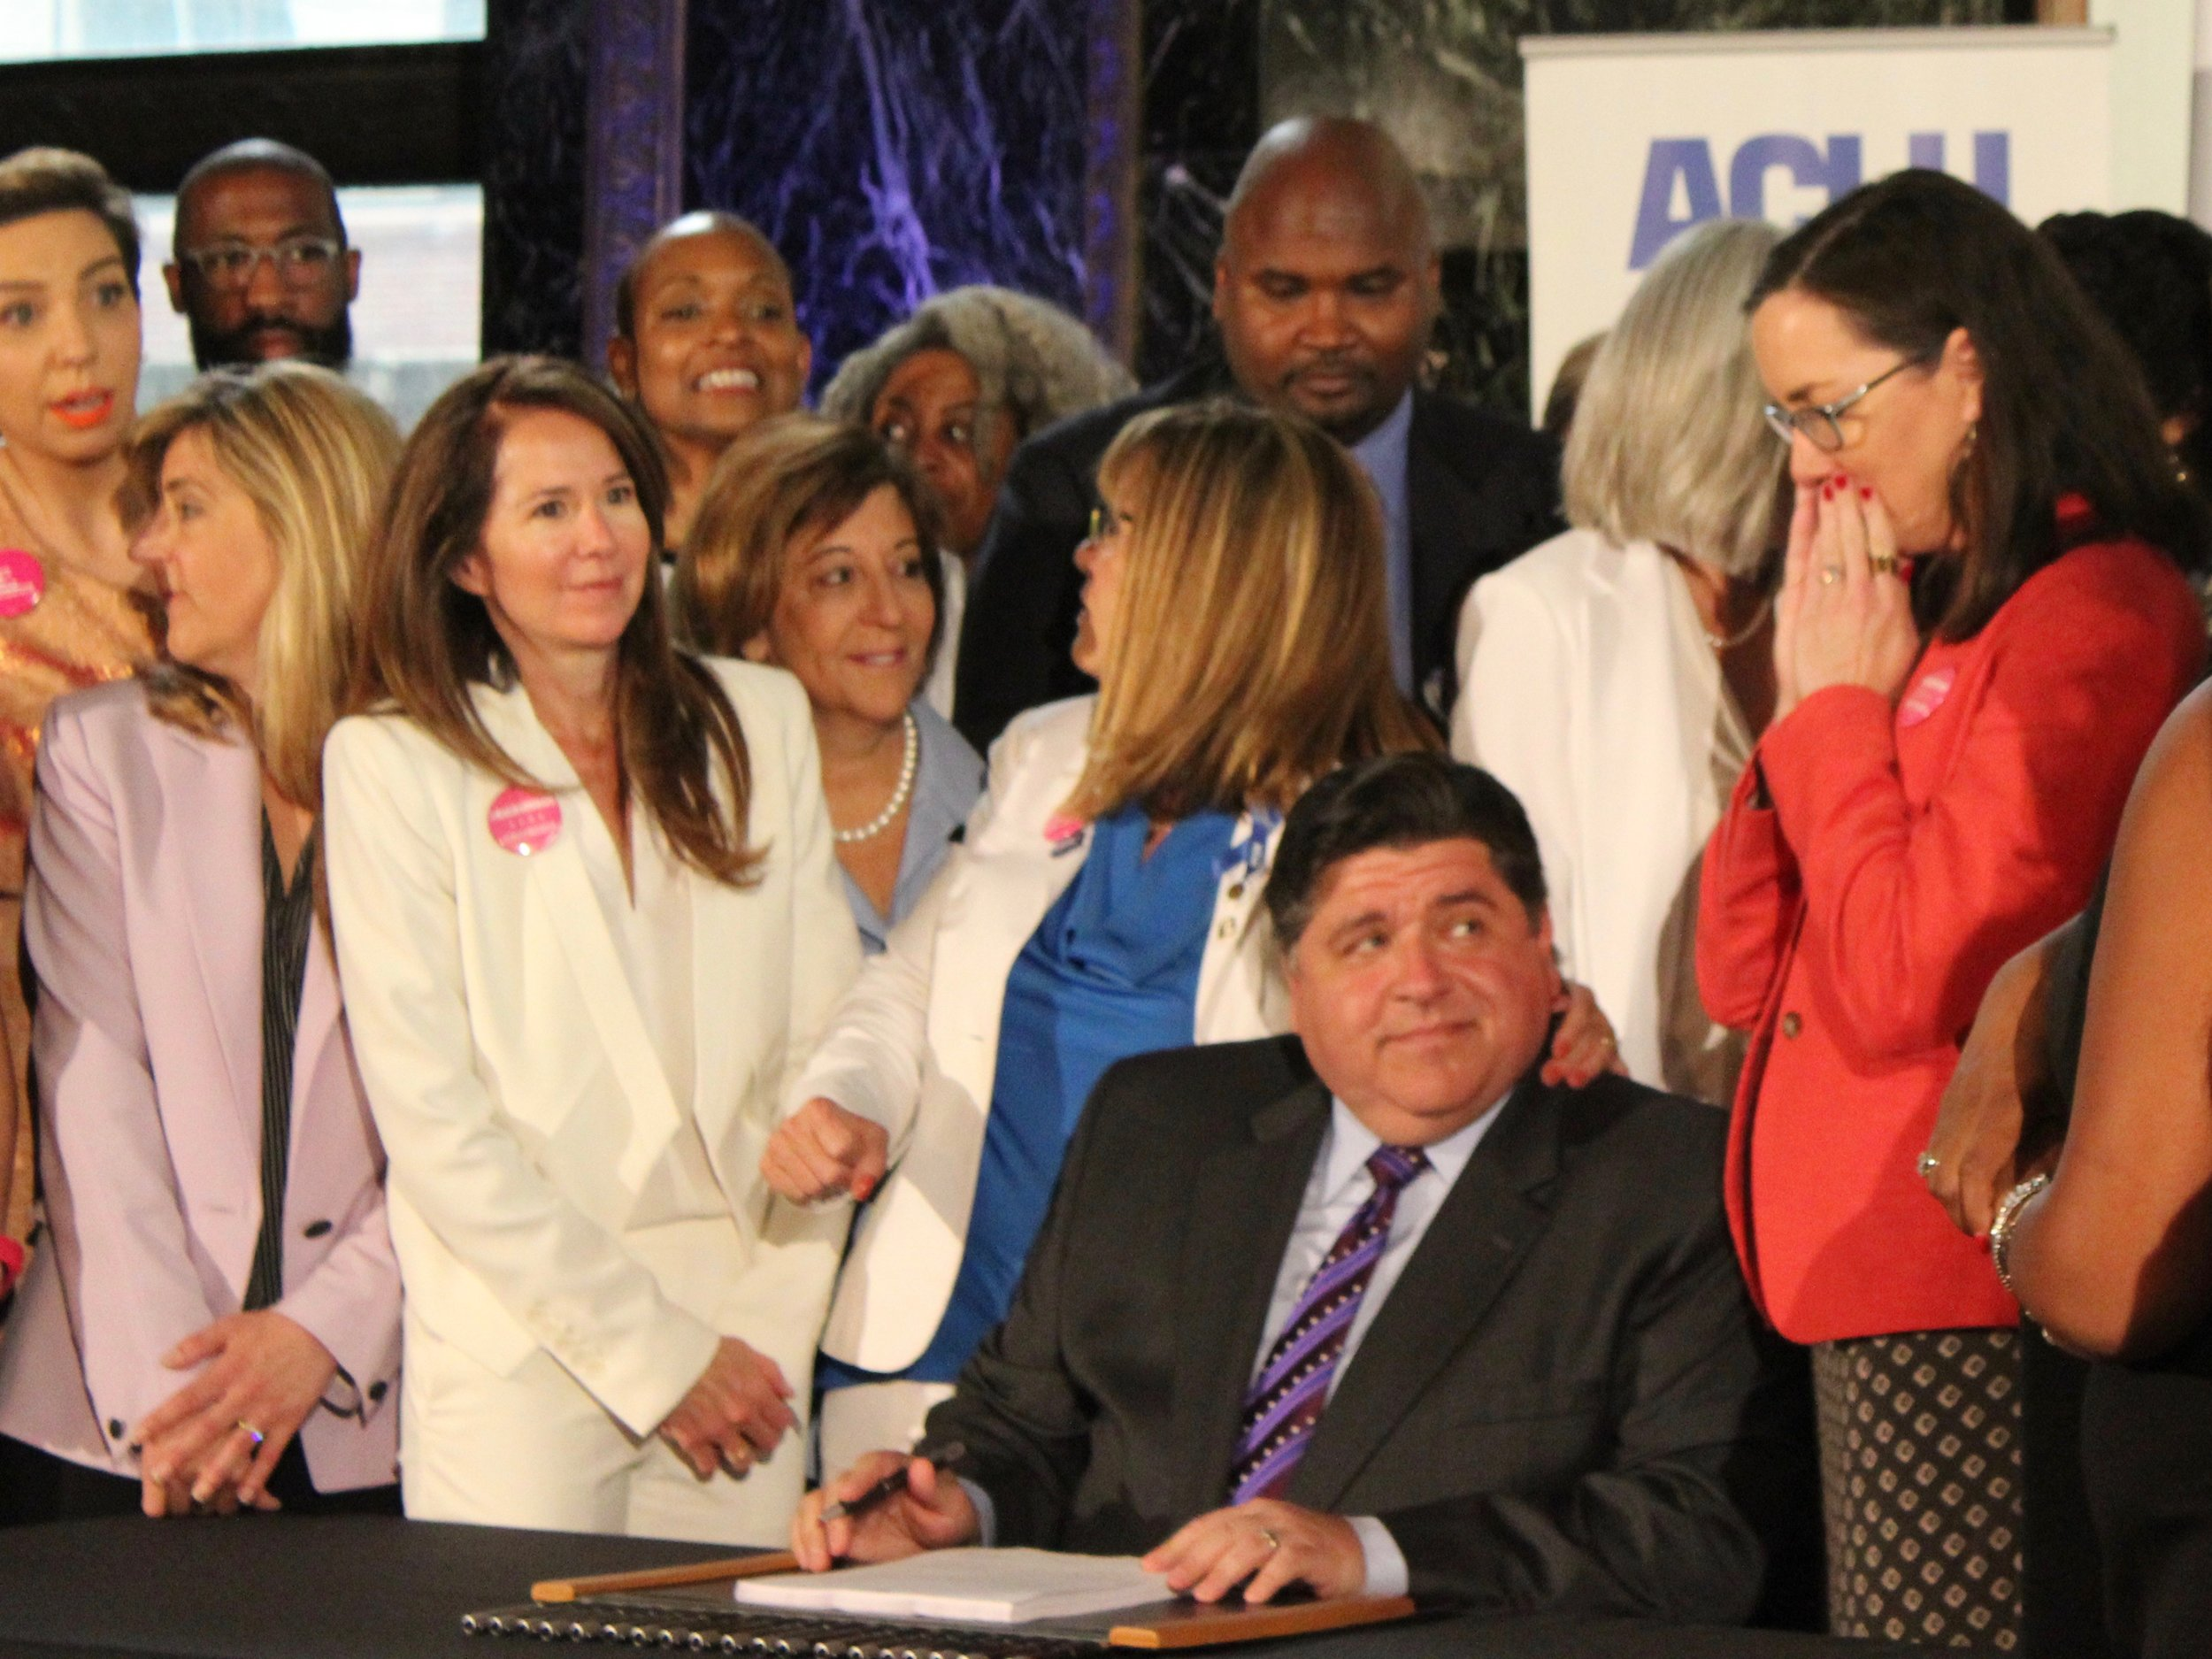 Backed by Sen. Bush and Rep. Cassidy, Gov. Pritzker prepares to sign the Reproductive Health Act into law. (One Illinois/Ted Cox)